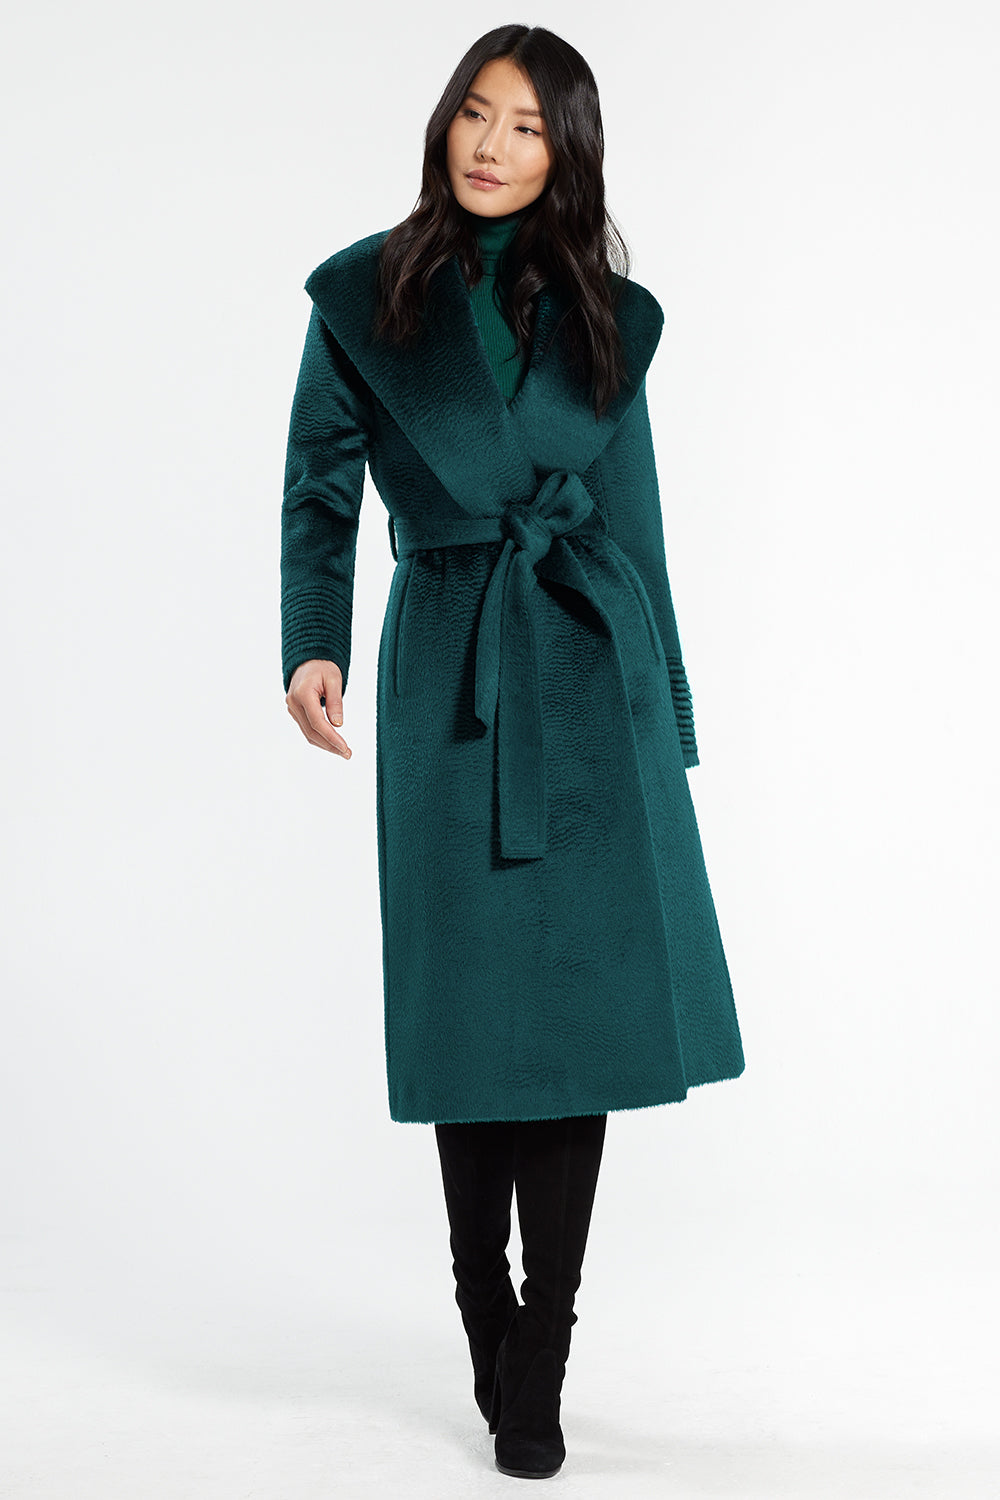 Sentaler Suri Alpaca Long Shawl Collar Wrap Coat featured in Suri Alpaca and available in Emerald Green. Seen from front.